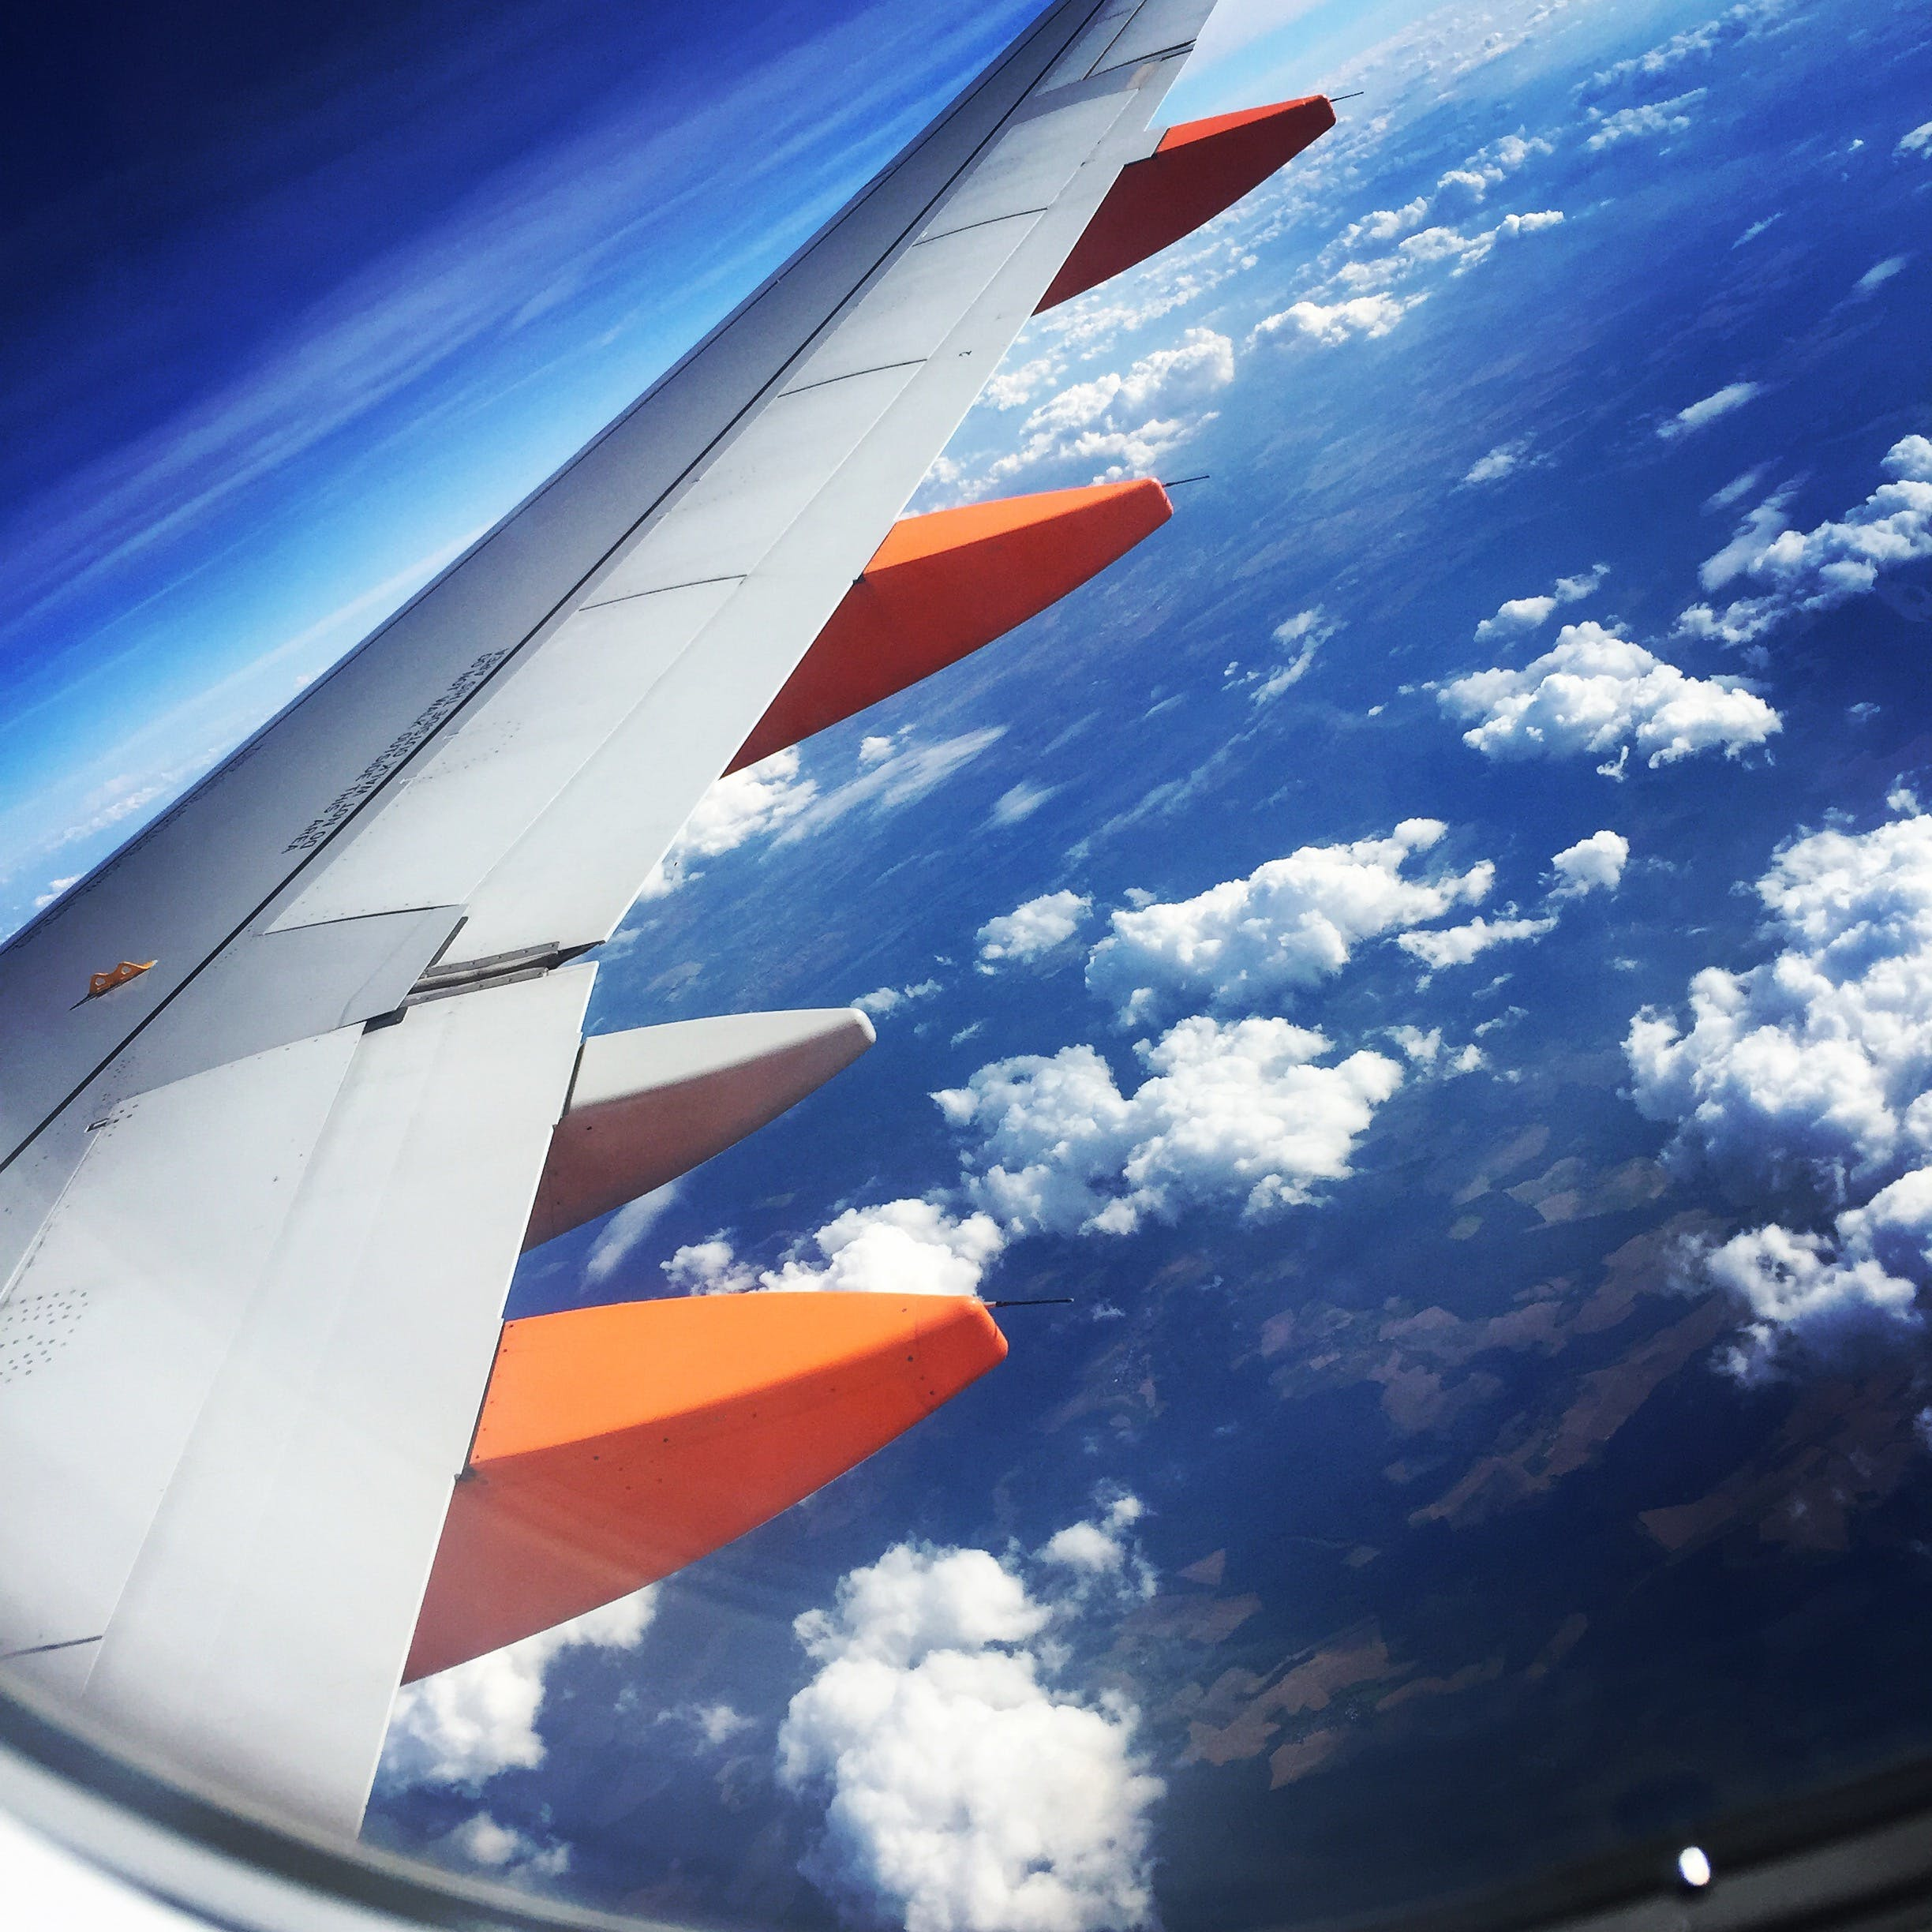 Free stock photo of airplane, blue sky, boeing, clear sky